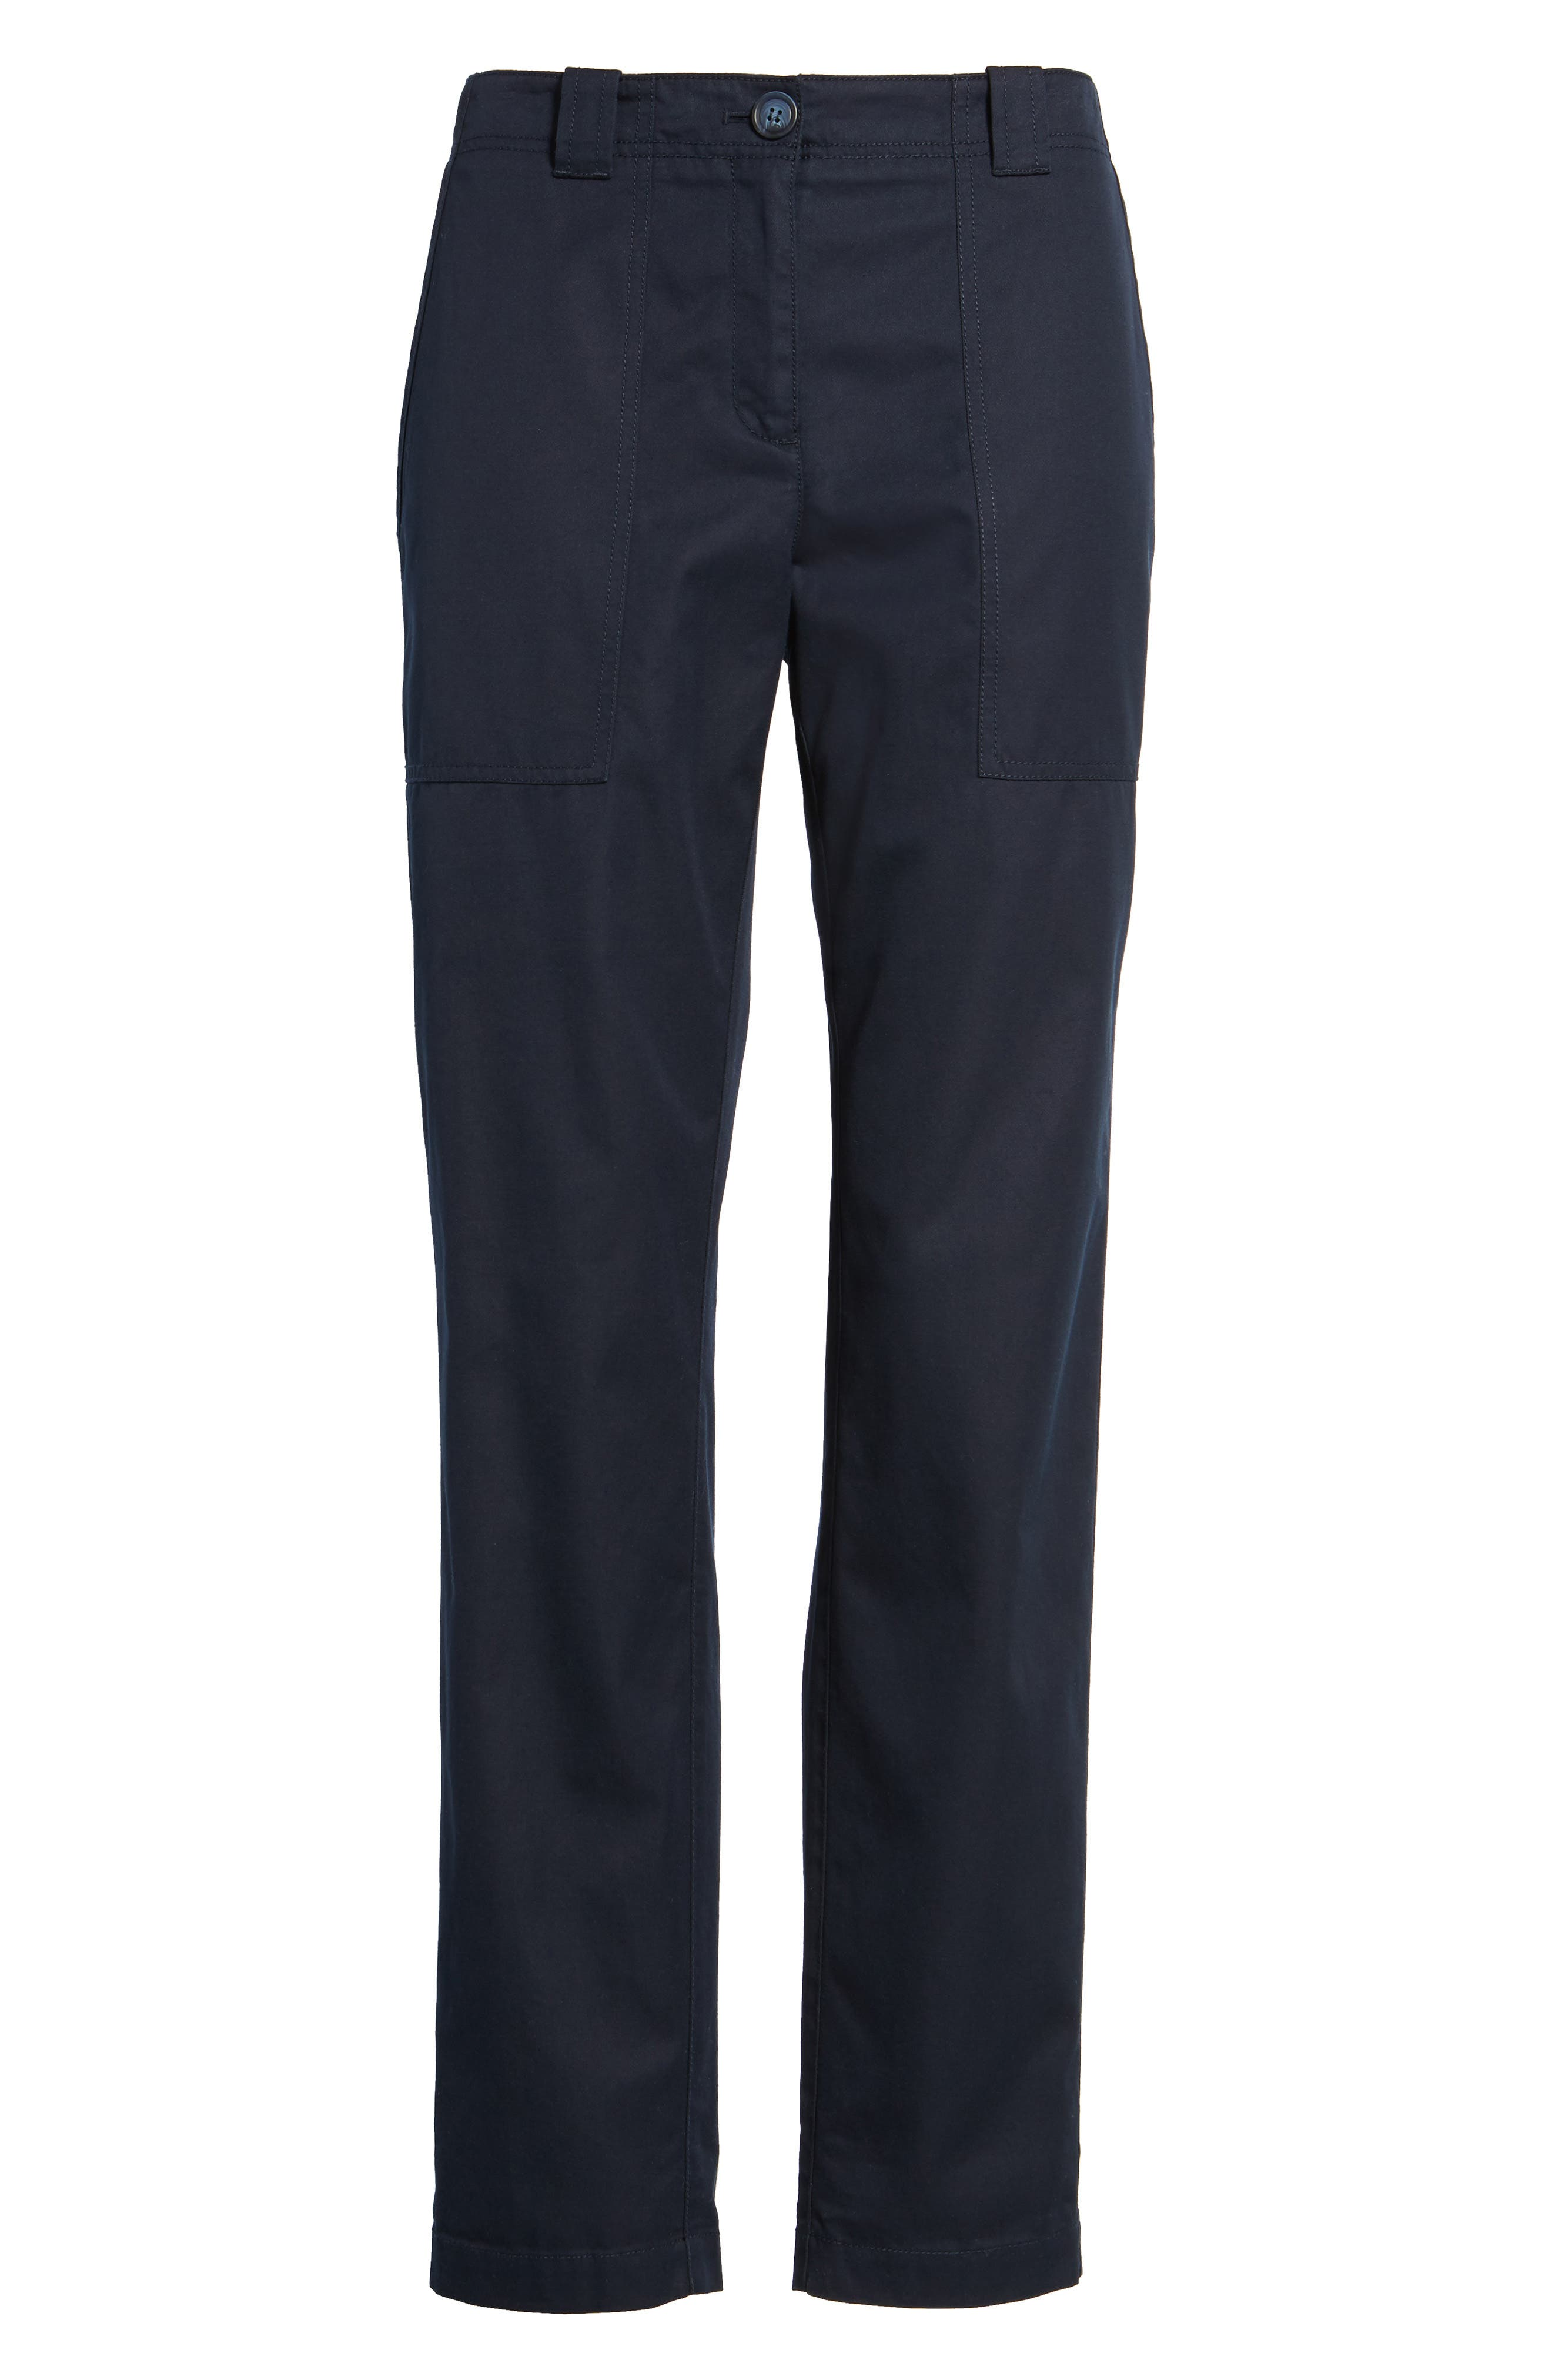 Patch Pocket Ankle Pants,                             Alternate thumbnail 6, color,                             Navy Night